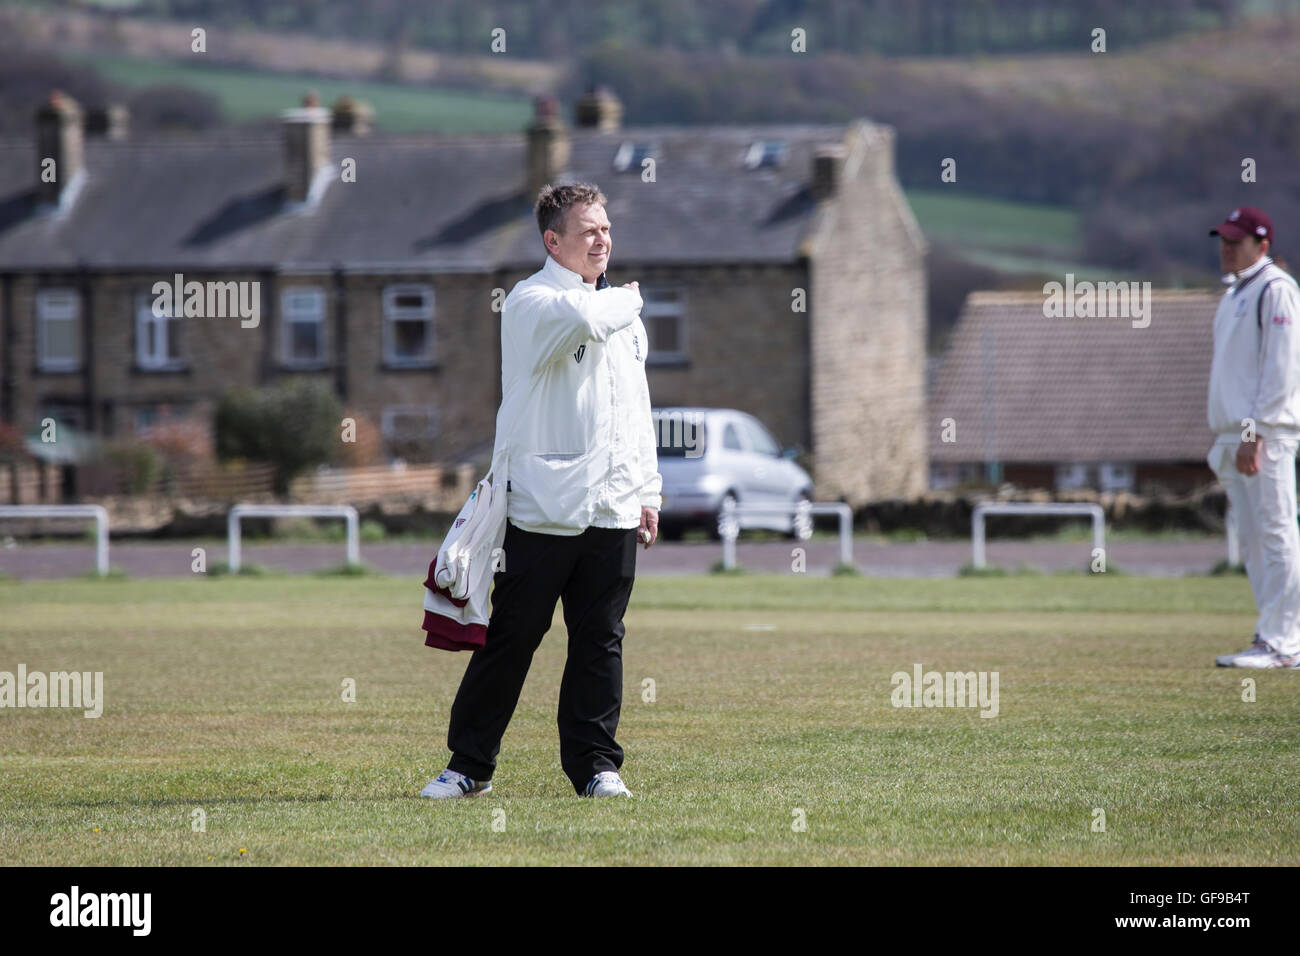 Cricket umpire signalling to the scorers during a village cricket game in England - Stock Image